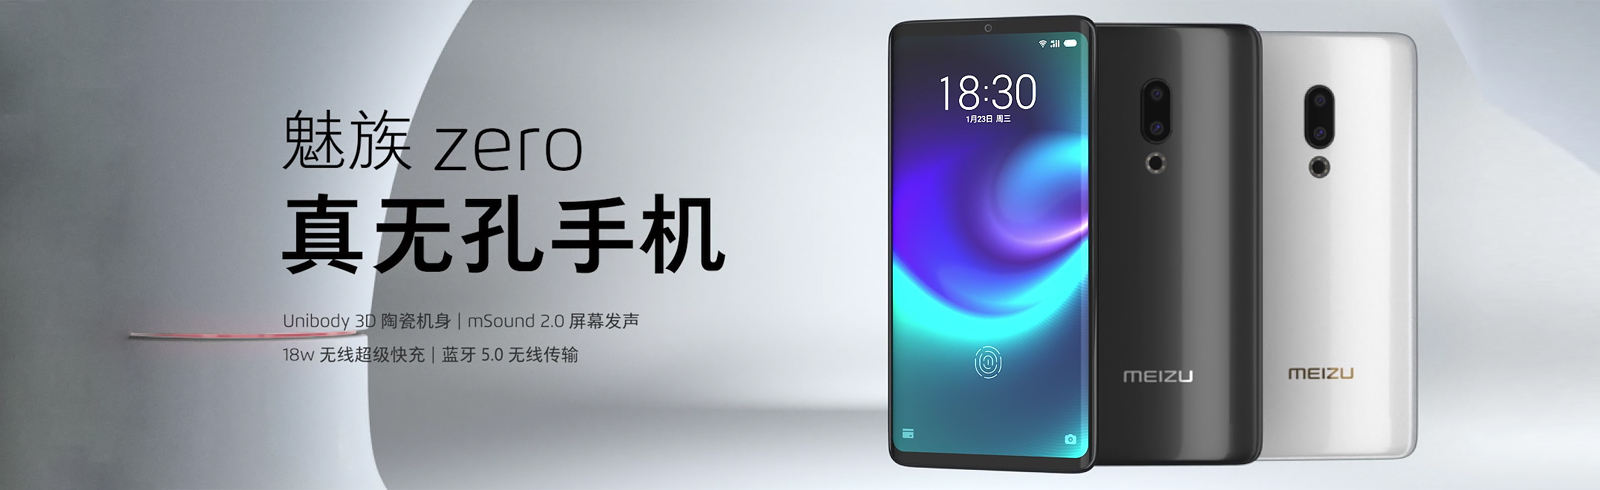 Meizu Zero is announced as the world's first seamless, uninterrupted phone